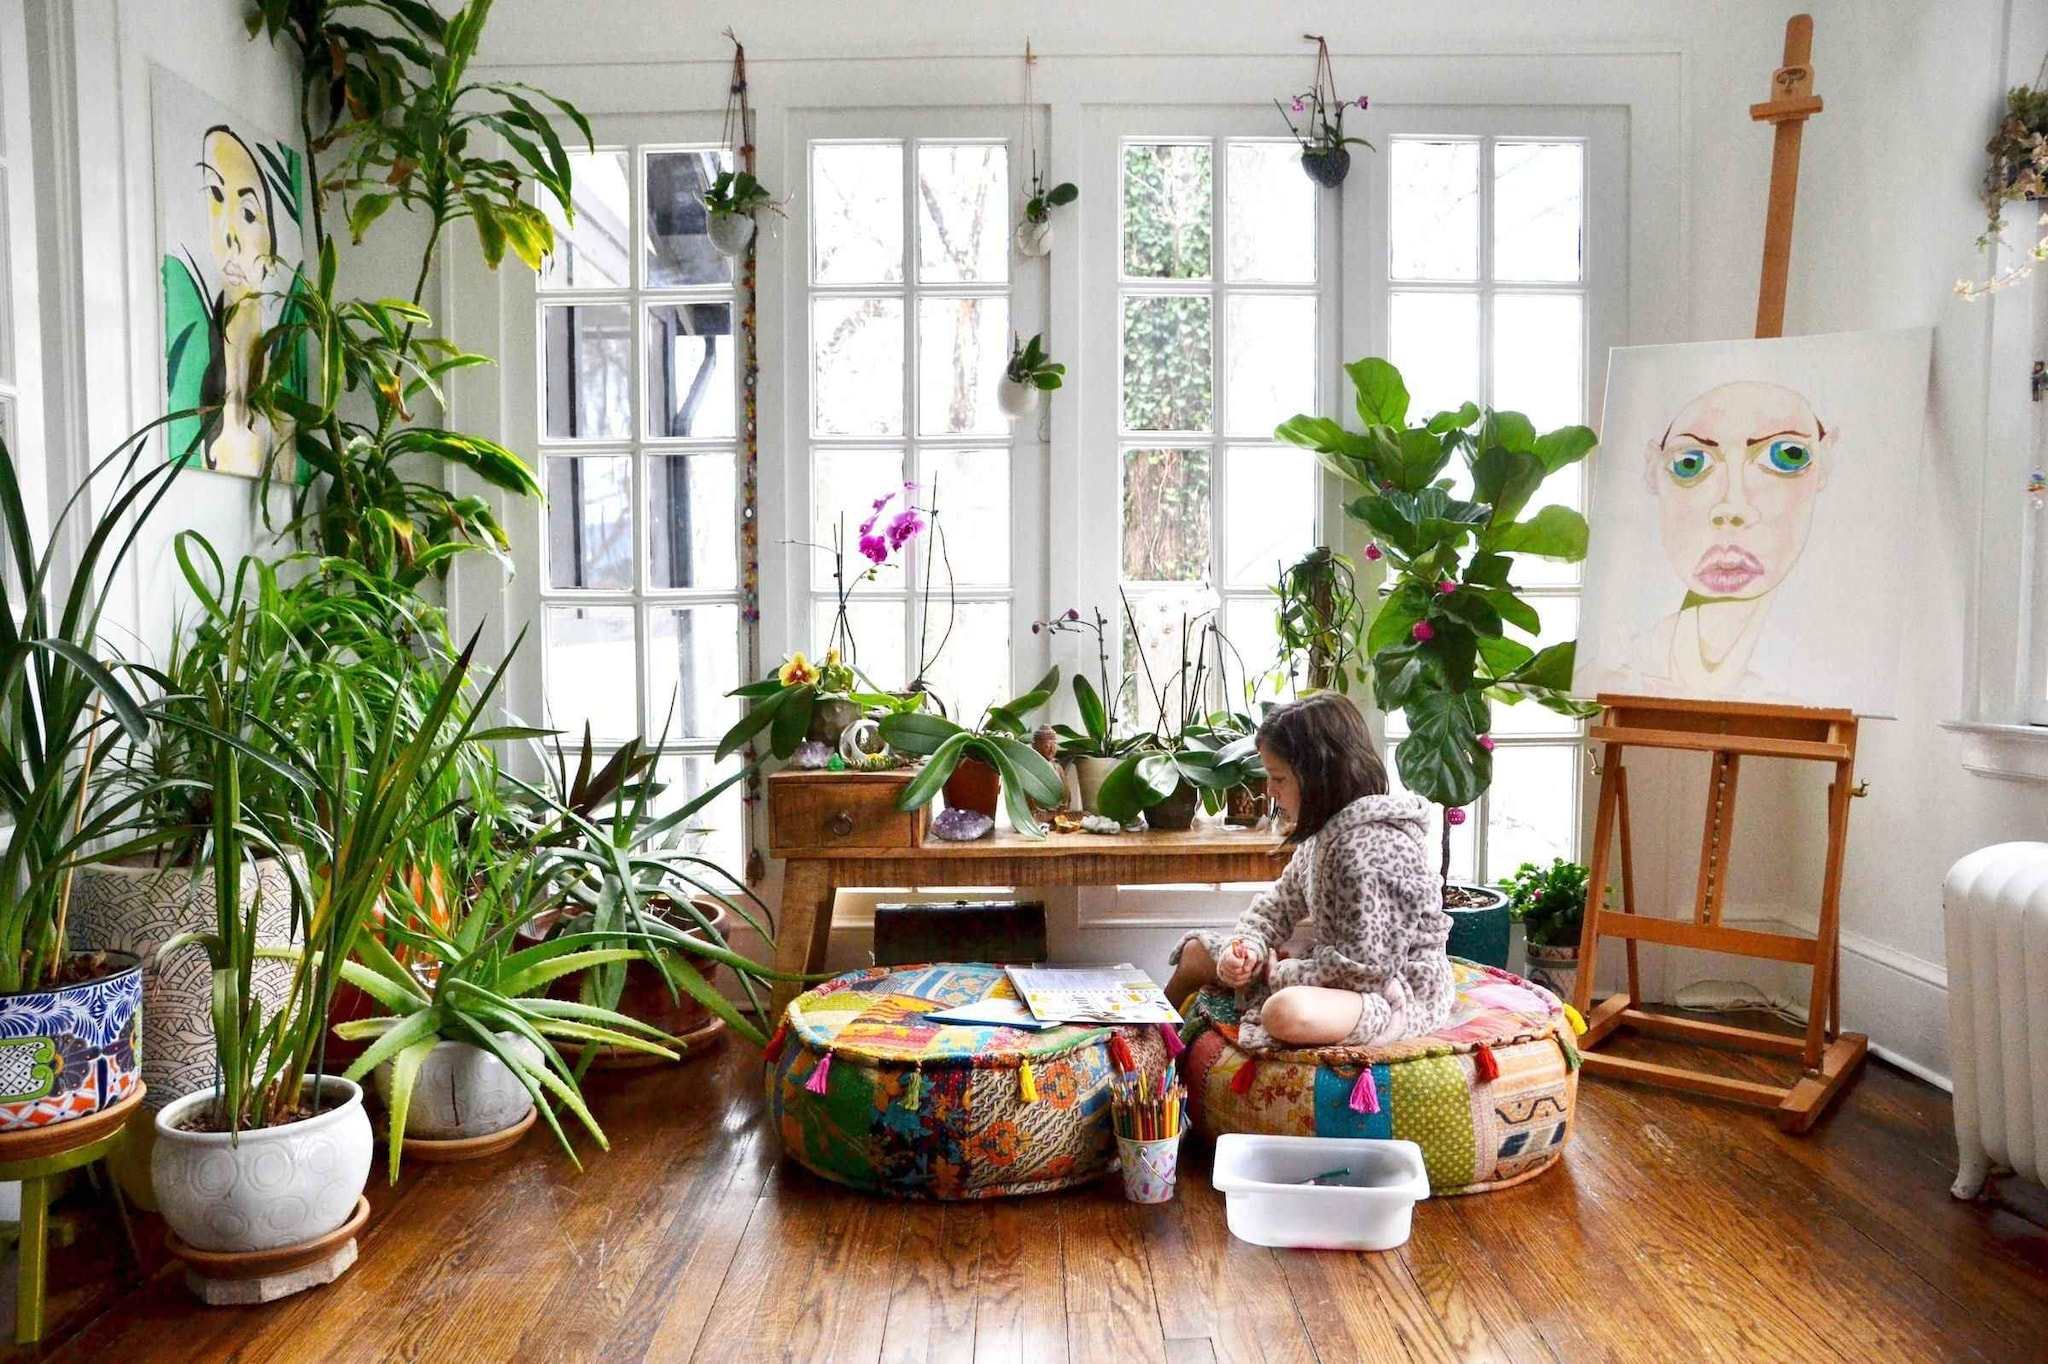 5 Amazing DIY Ideas to Decorate Your Home With Plants - JD ... on home page ideas, home protection ideas, home pool ideas, home landscape ideas, home flower ideas, home technology ideas, home construction ideas, home lawn ideas, home rock ideas, home color ideas, home shop ideas, home park ideas, home project ideas, home summer ideas, home lighting ideas, home wall ideas, home fence ideas, home business ideas, home design ideas, home greenhouse ideas,